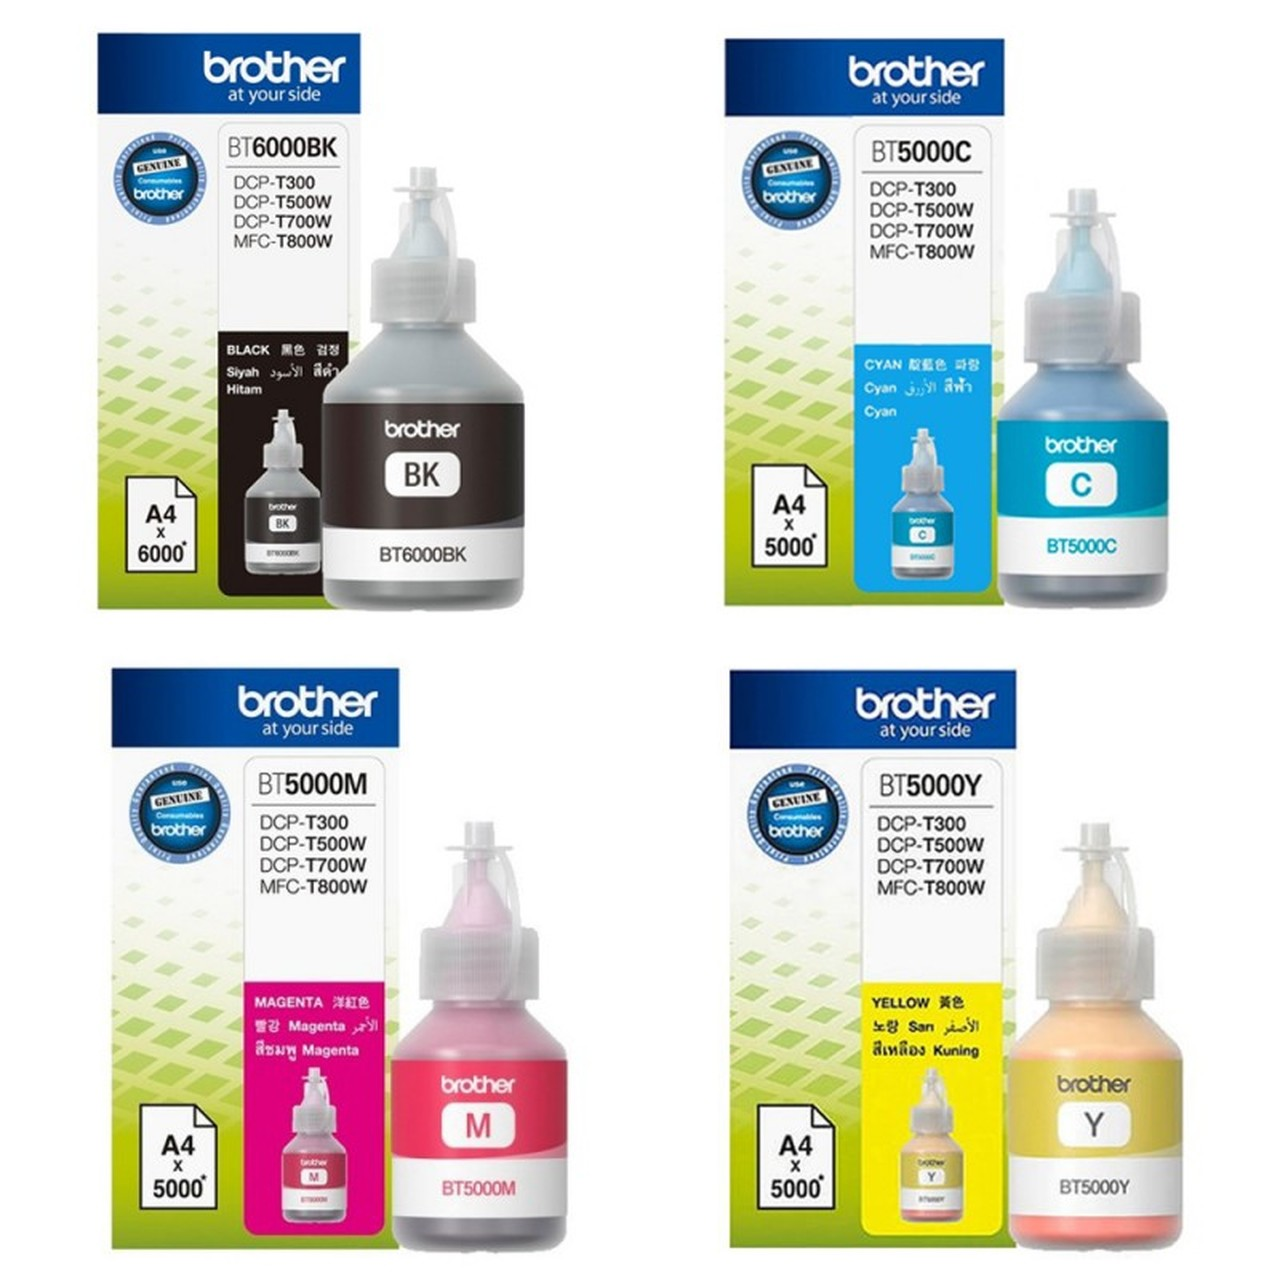 Brother BT5000 & BT6000Bk Ink Bottles Colour